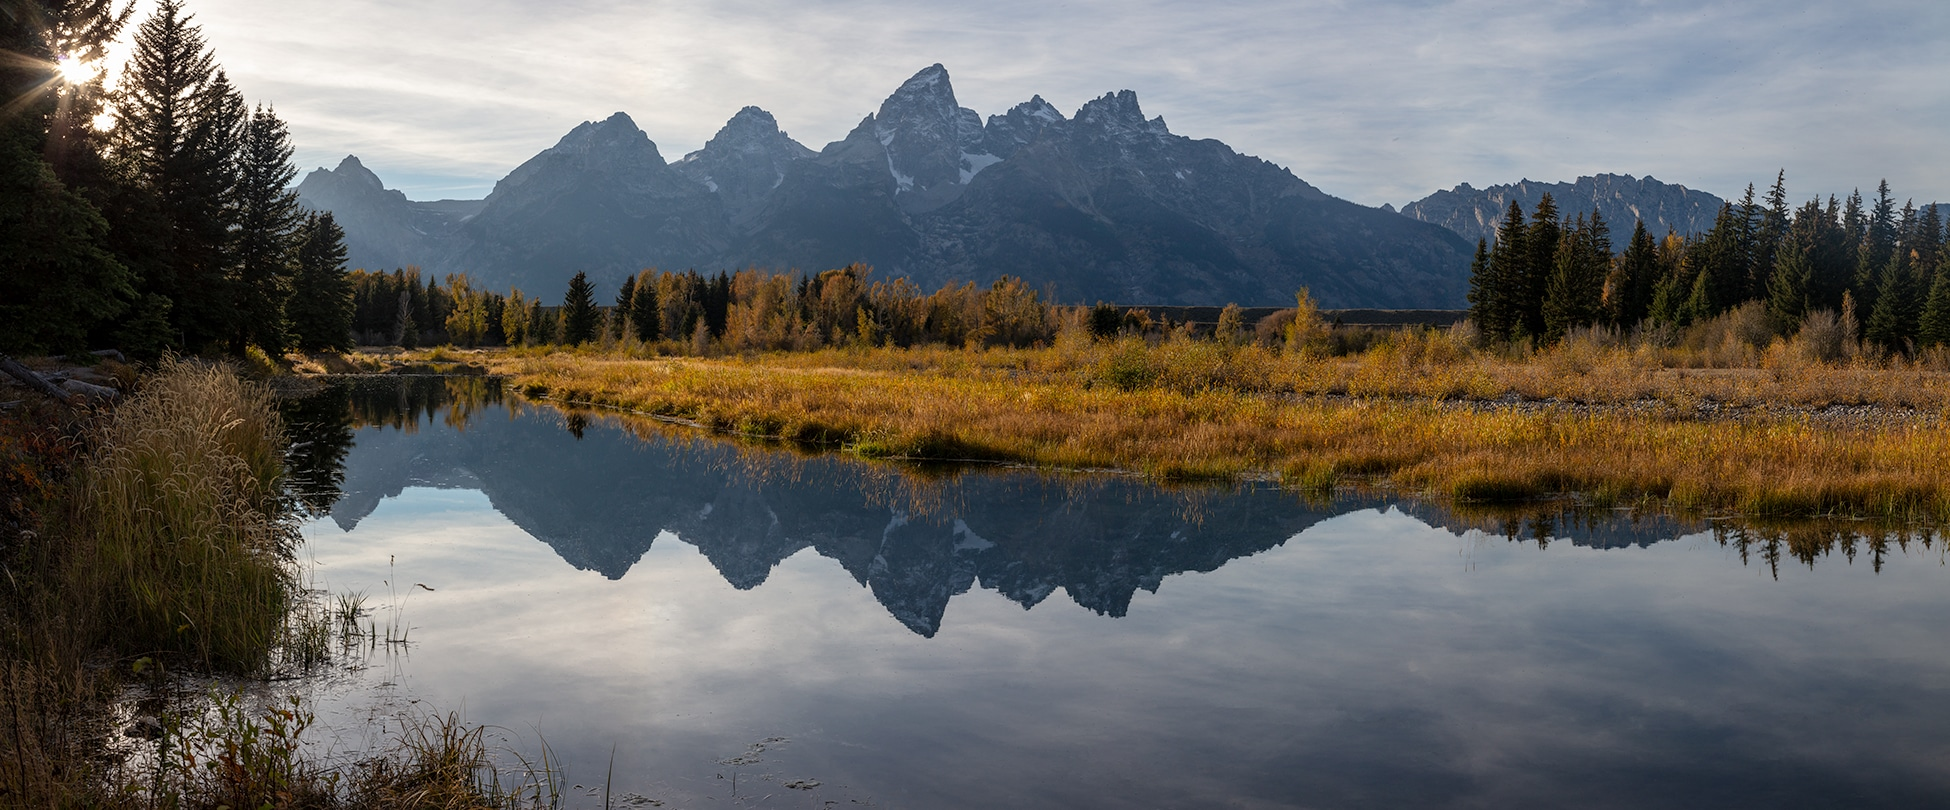 Photograph of the Grand Teton mountain range with a reflection over a river